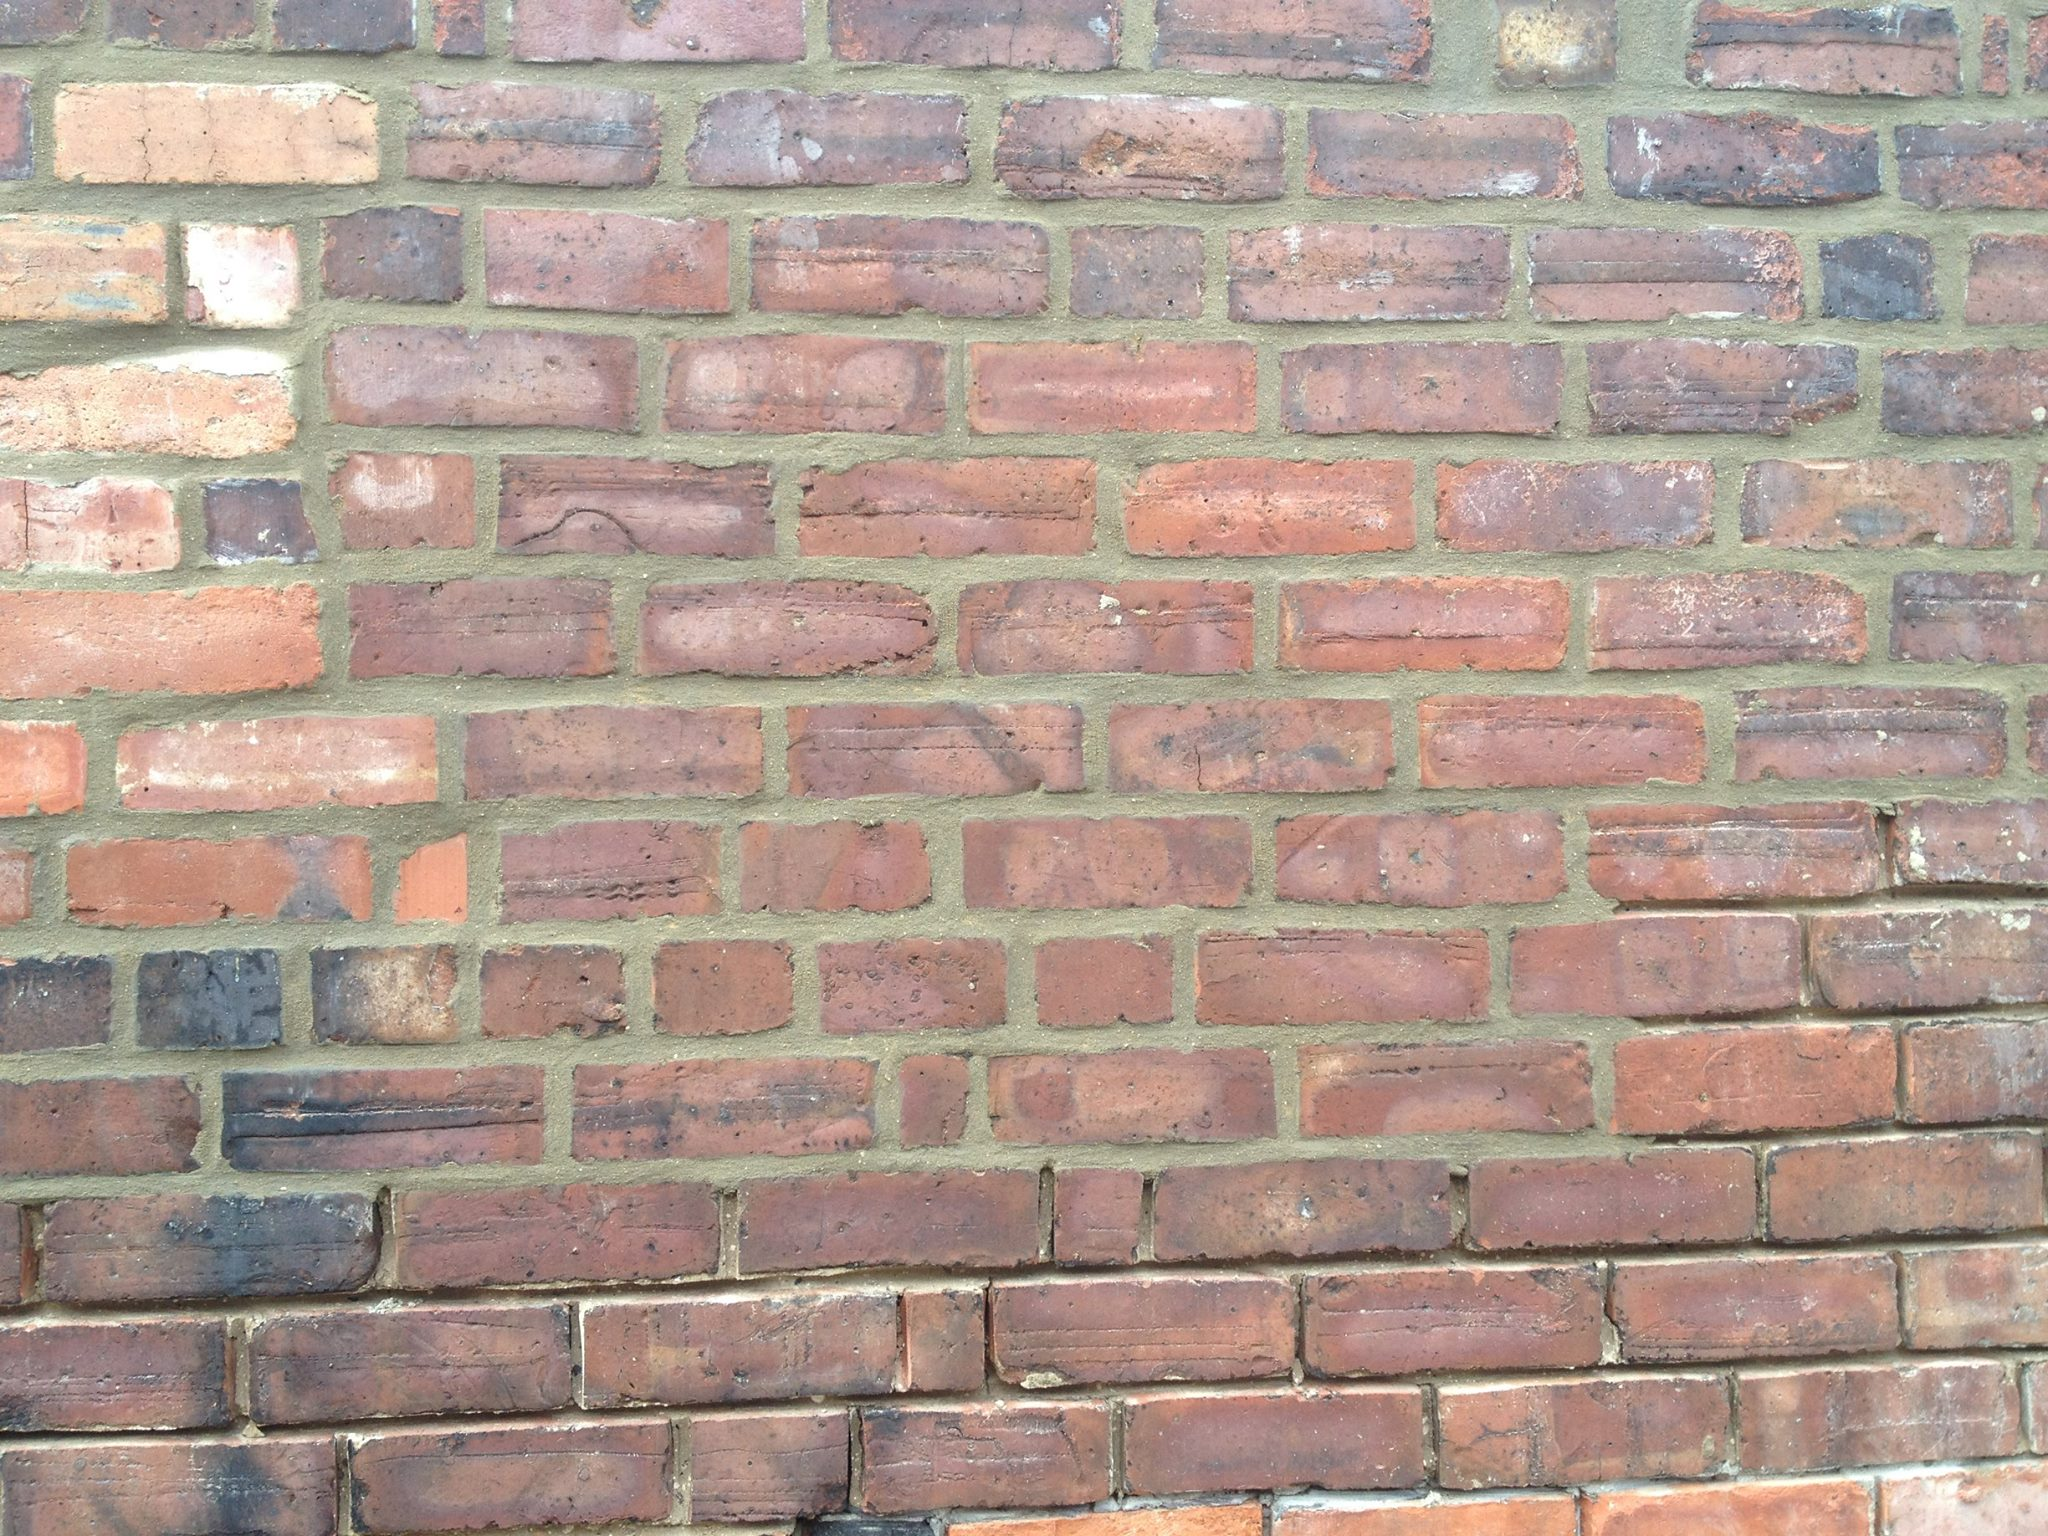 Repointing